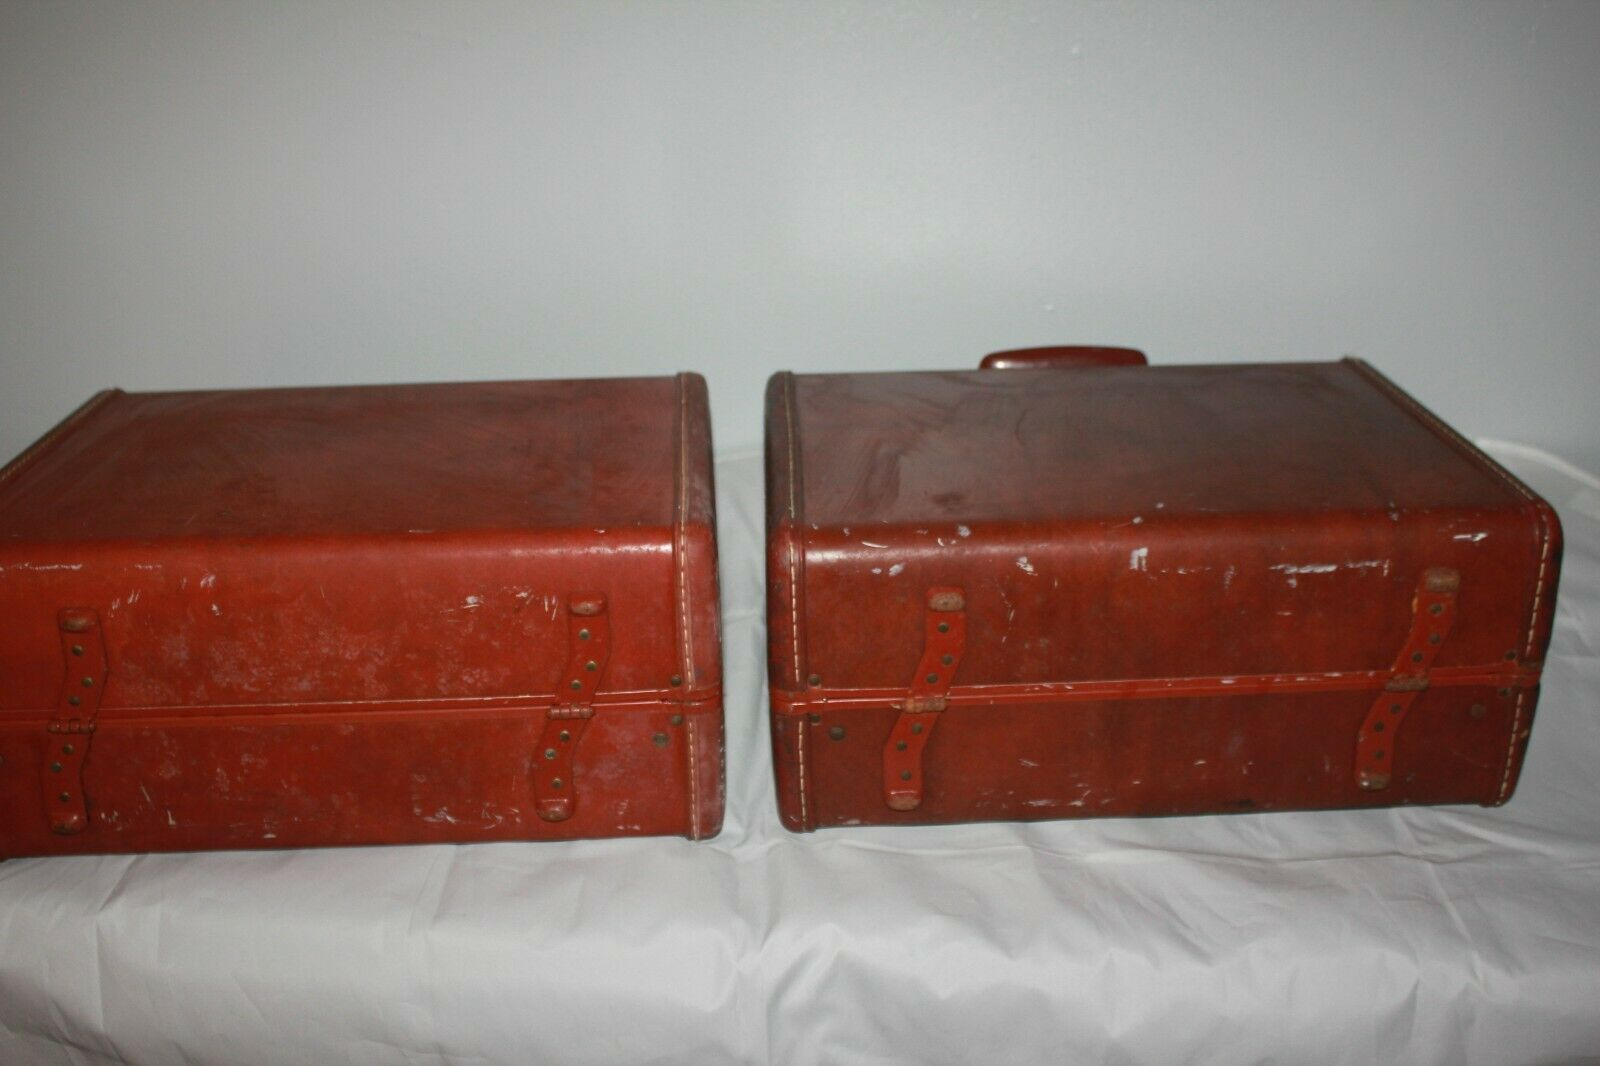 Lot of 2 Vintage 1950's Samsonite Suitcases - Luggage Shwayder Bros Denver 4916